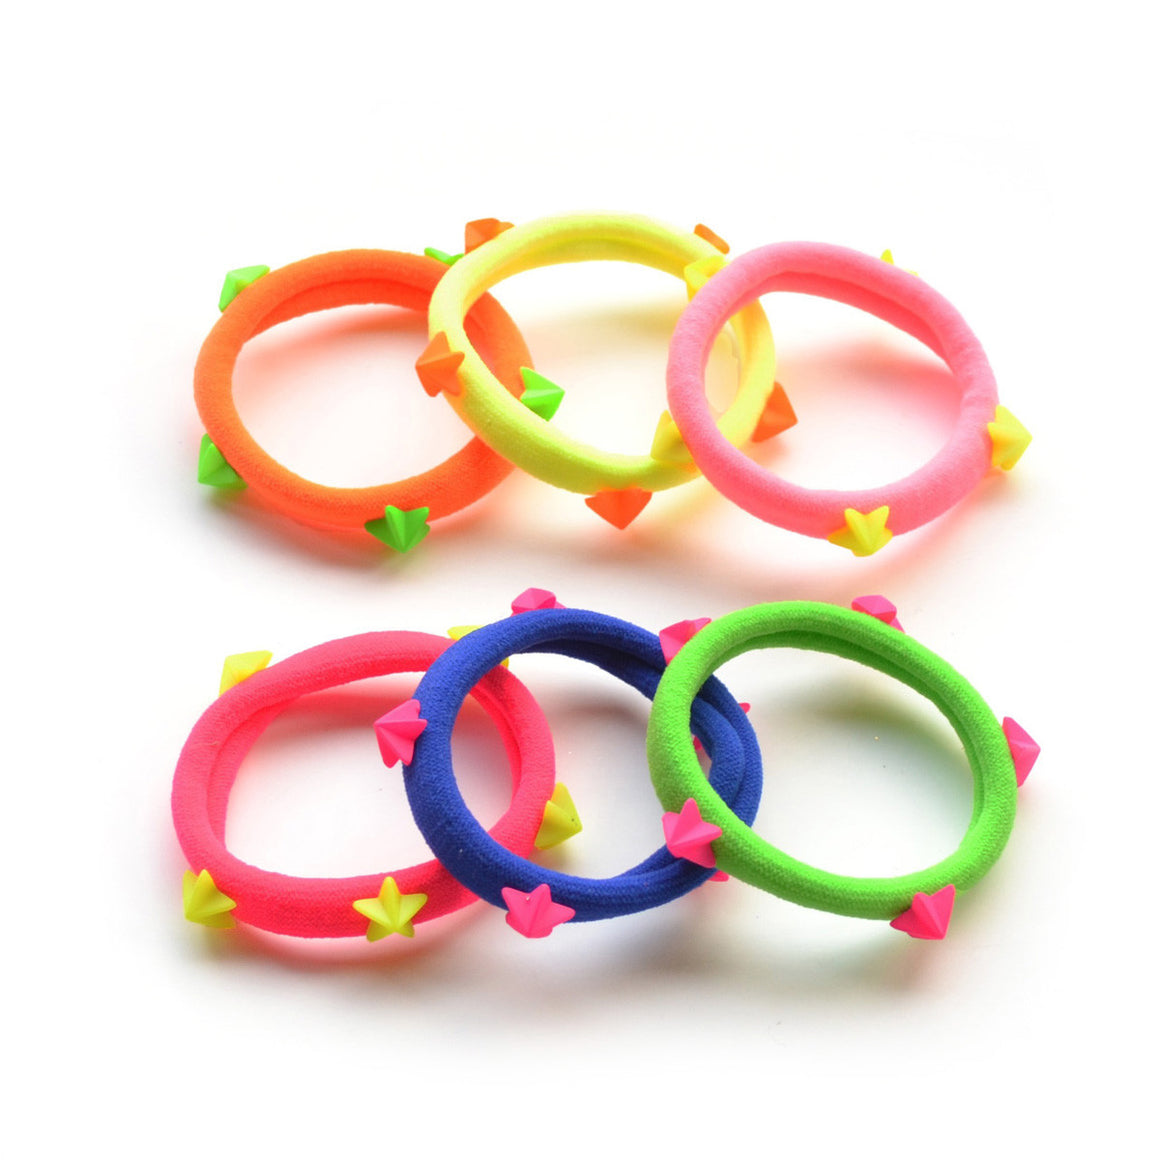 bright/neon star stud ponytail holders // hello shiso hair accessories for girls